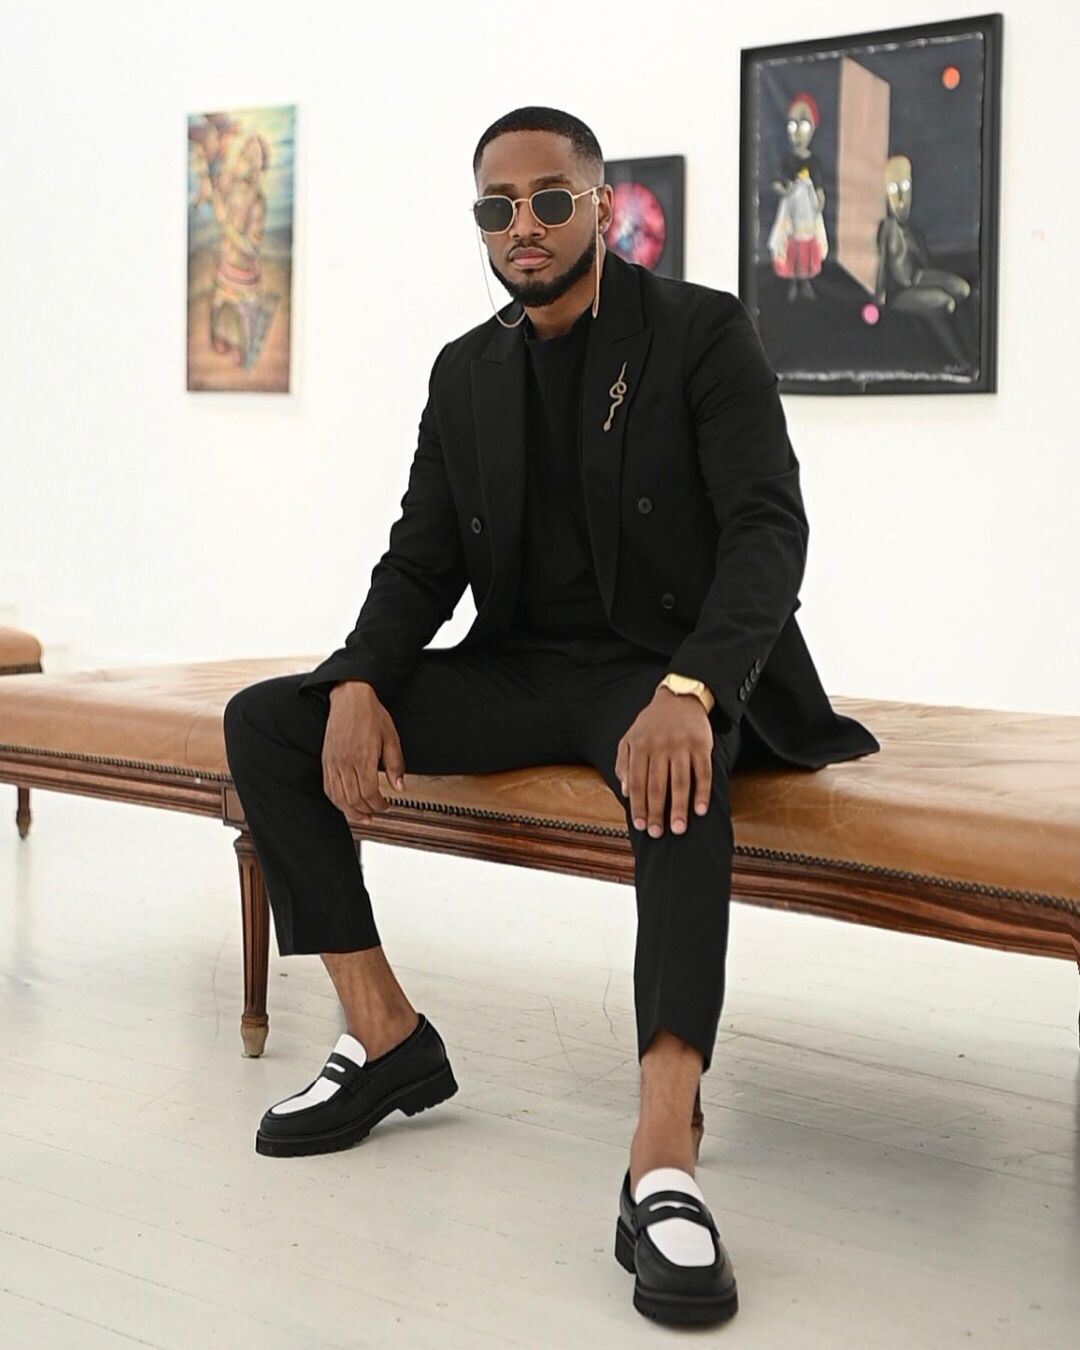 best-dressed-list-male-celebrities-africa-personality-formality-style-rave